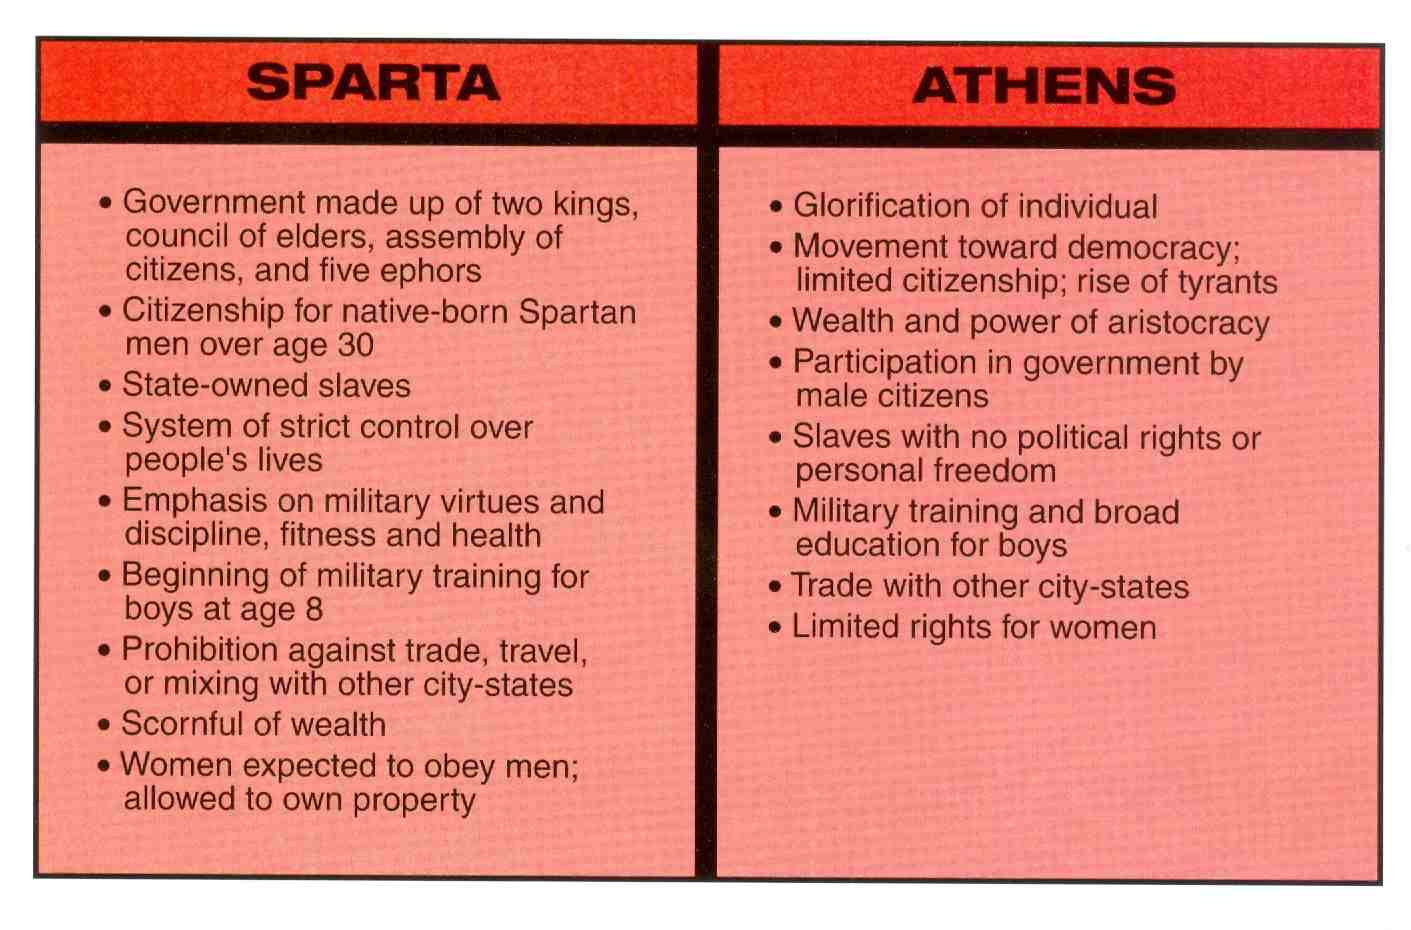 compare athens and sparta essay Athens focused more on education and the arts while sparta revolved around military strength and battle because sparta had such a massively influential military, we use tactics and strategies derived from them even today.